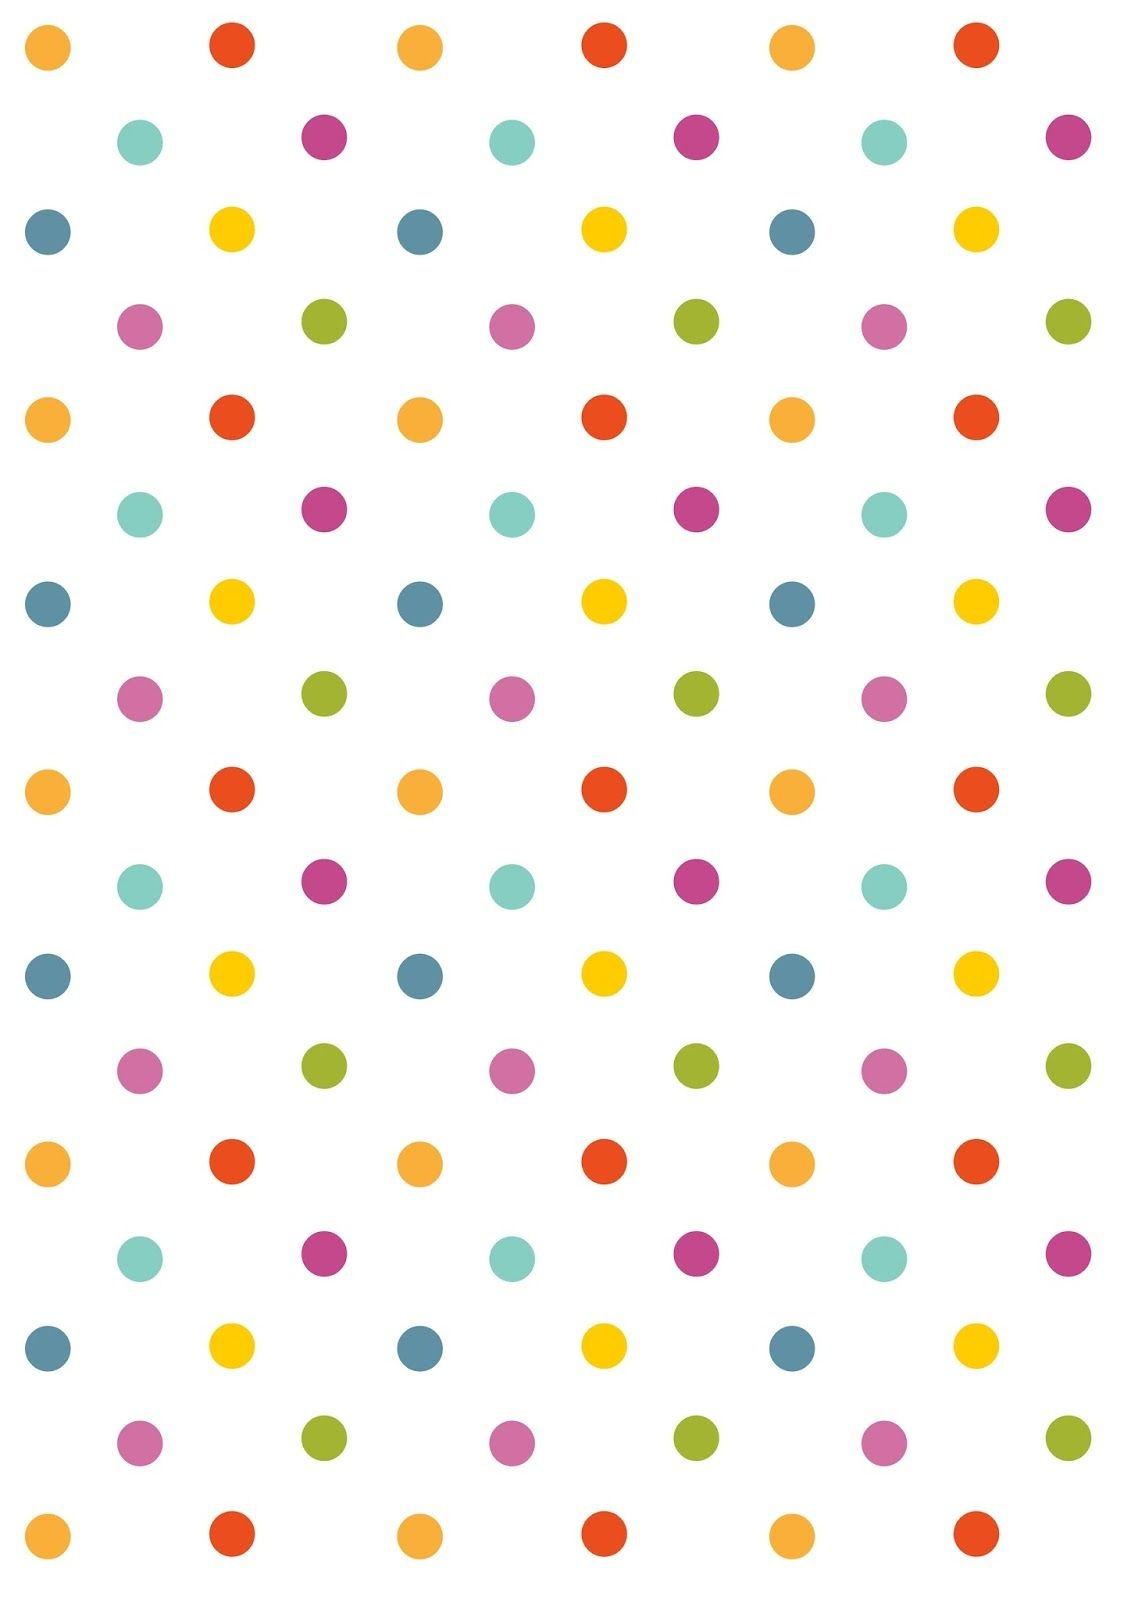 Free Digital Polka Dot Scrapbooking Paper - Ausdruckbares - Free Printable Backgrounds